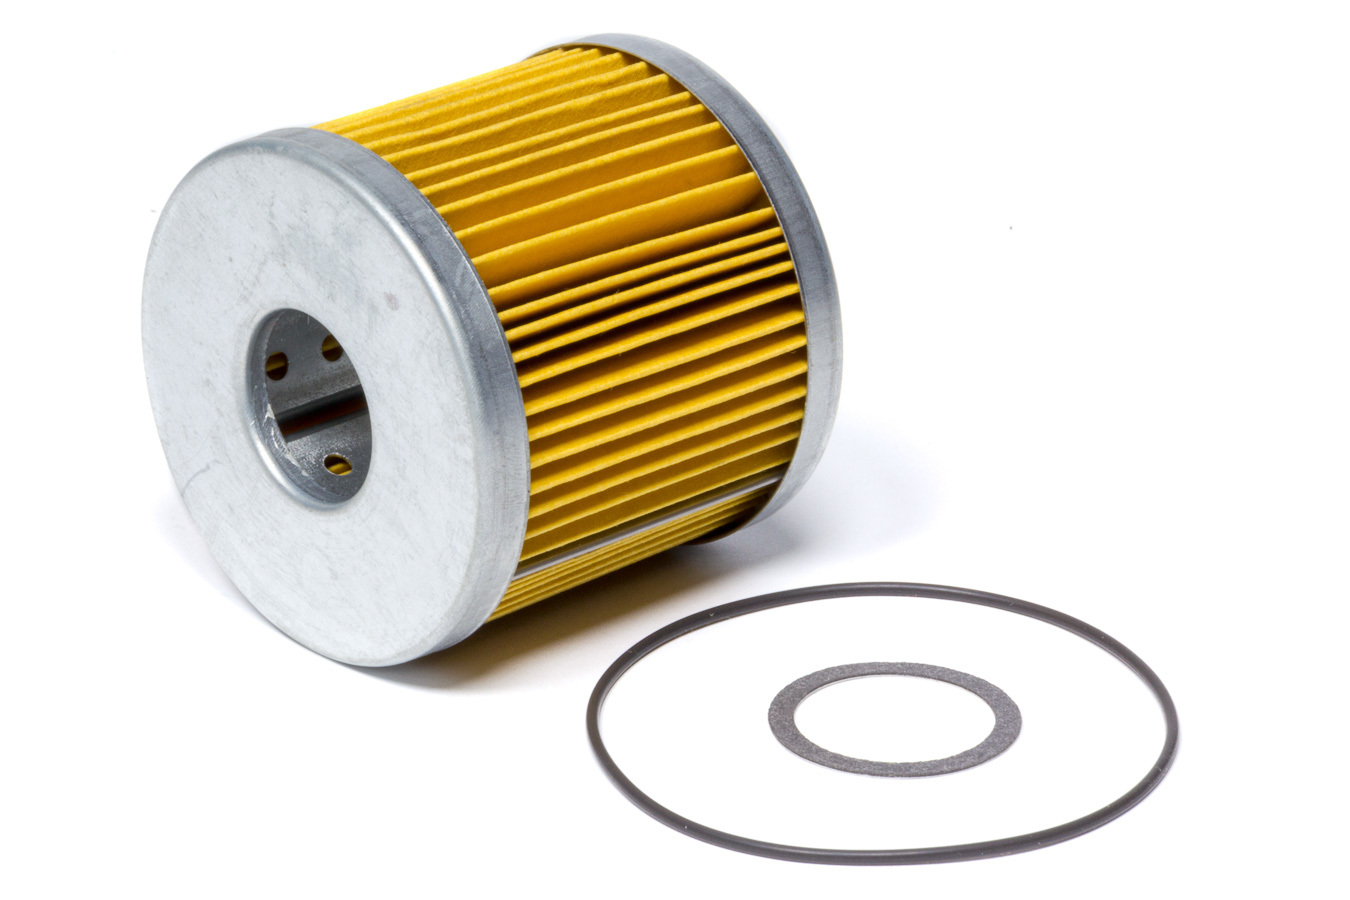 Mallory 29239 Fuel Filter Element, 40 Micron Paper, Mallory O-Ring Fuel Filters, Each